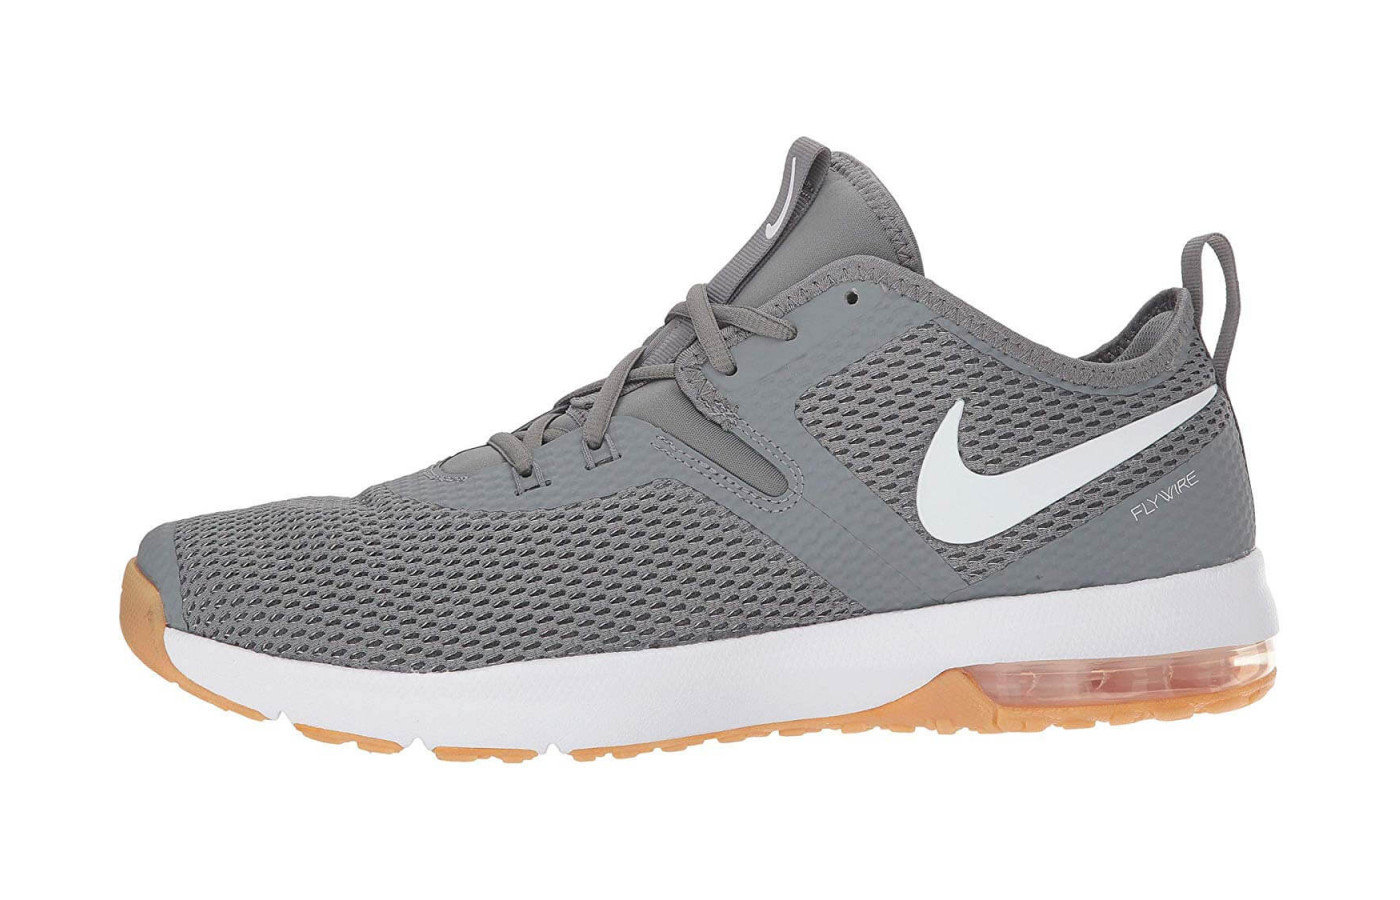 nike free rn cmtr, grey air max 2014 mens,nike basketball